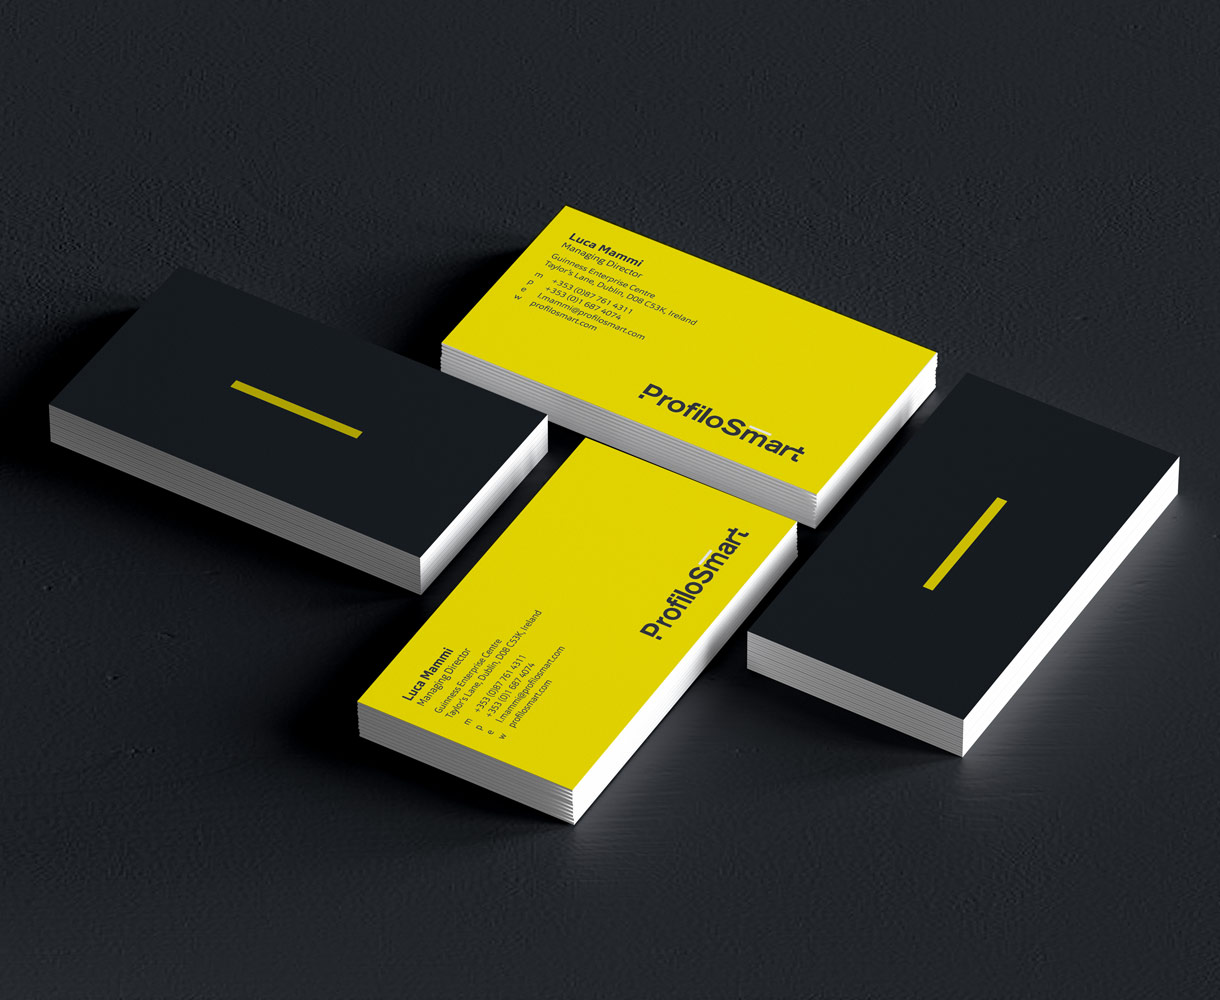 ProfiloSmart Brand identity stationery suite business cards